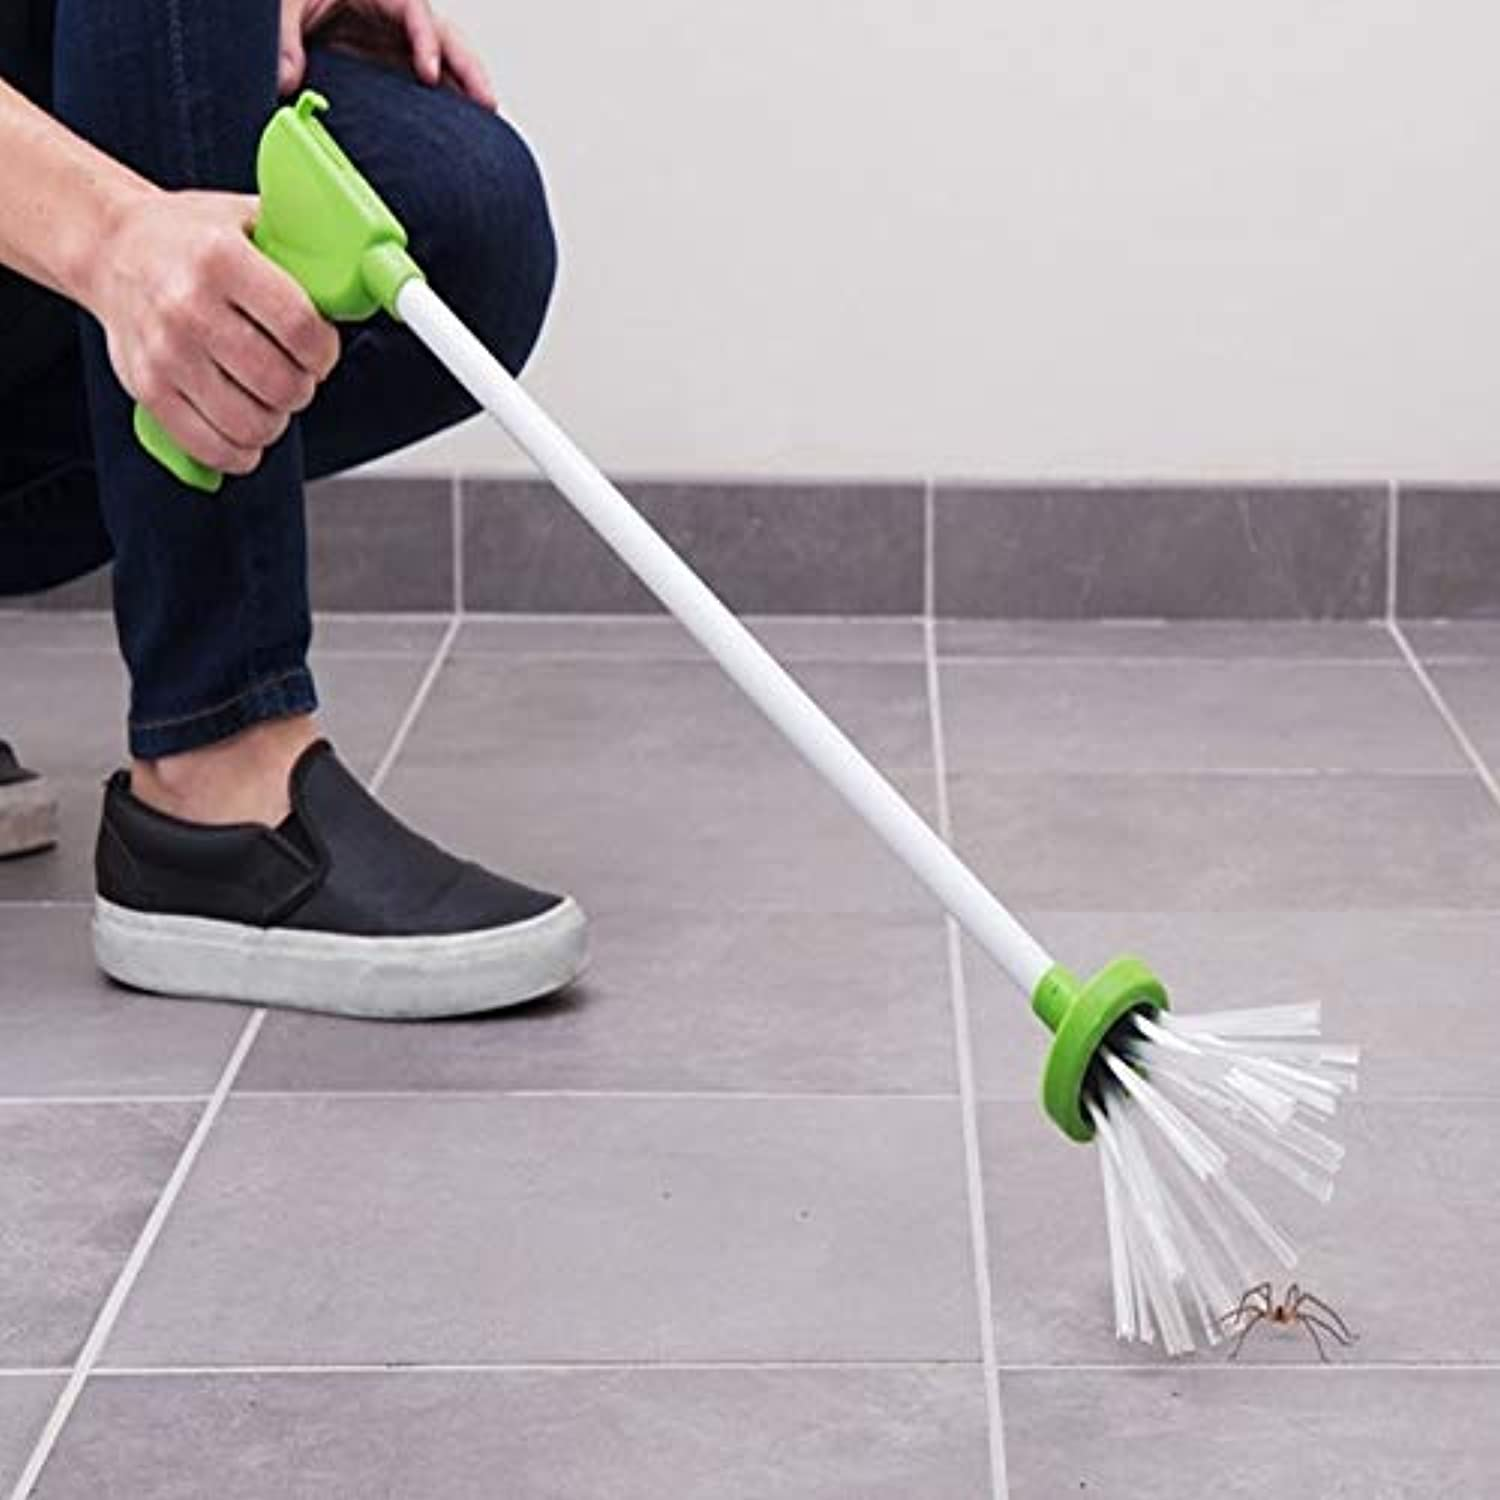 My Critter Catcher Long-Handled Insect Grabber Travel Eco Friendly Catch & Release Spiders and Insects Pest Control Garden Supp